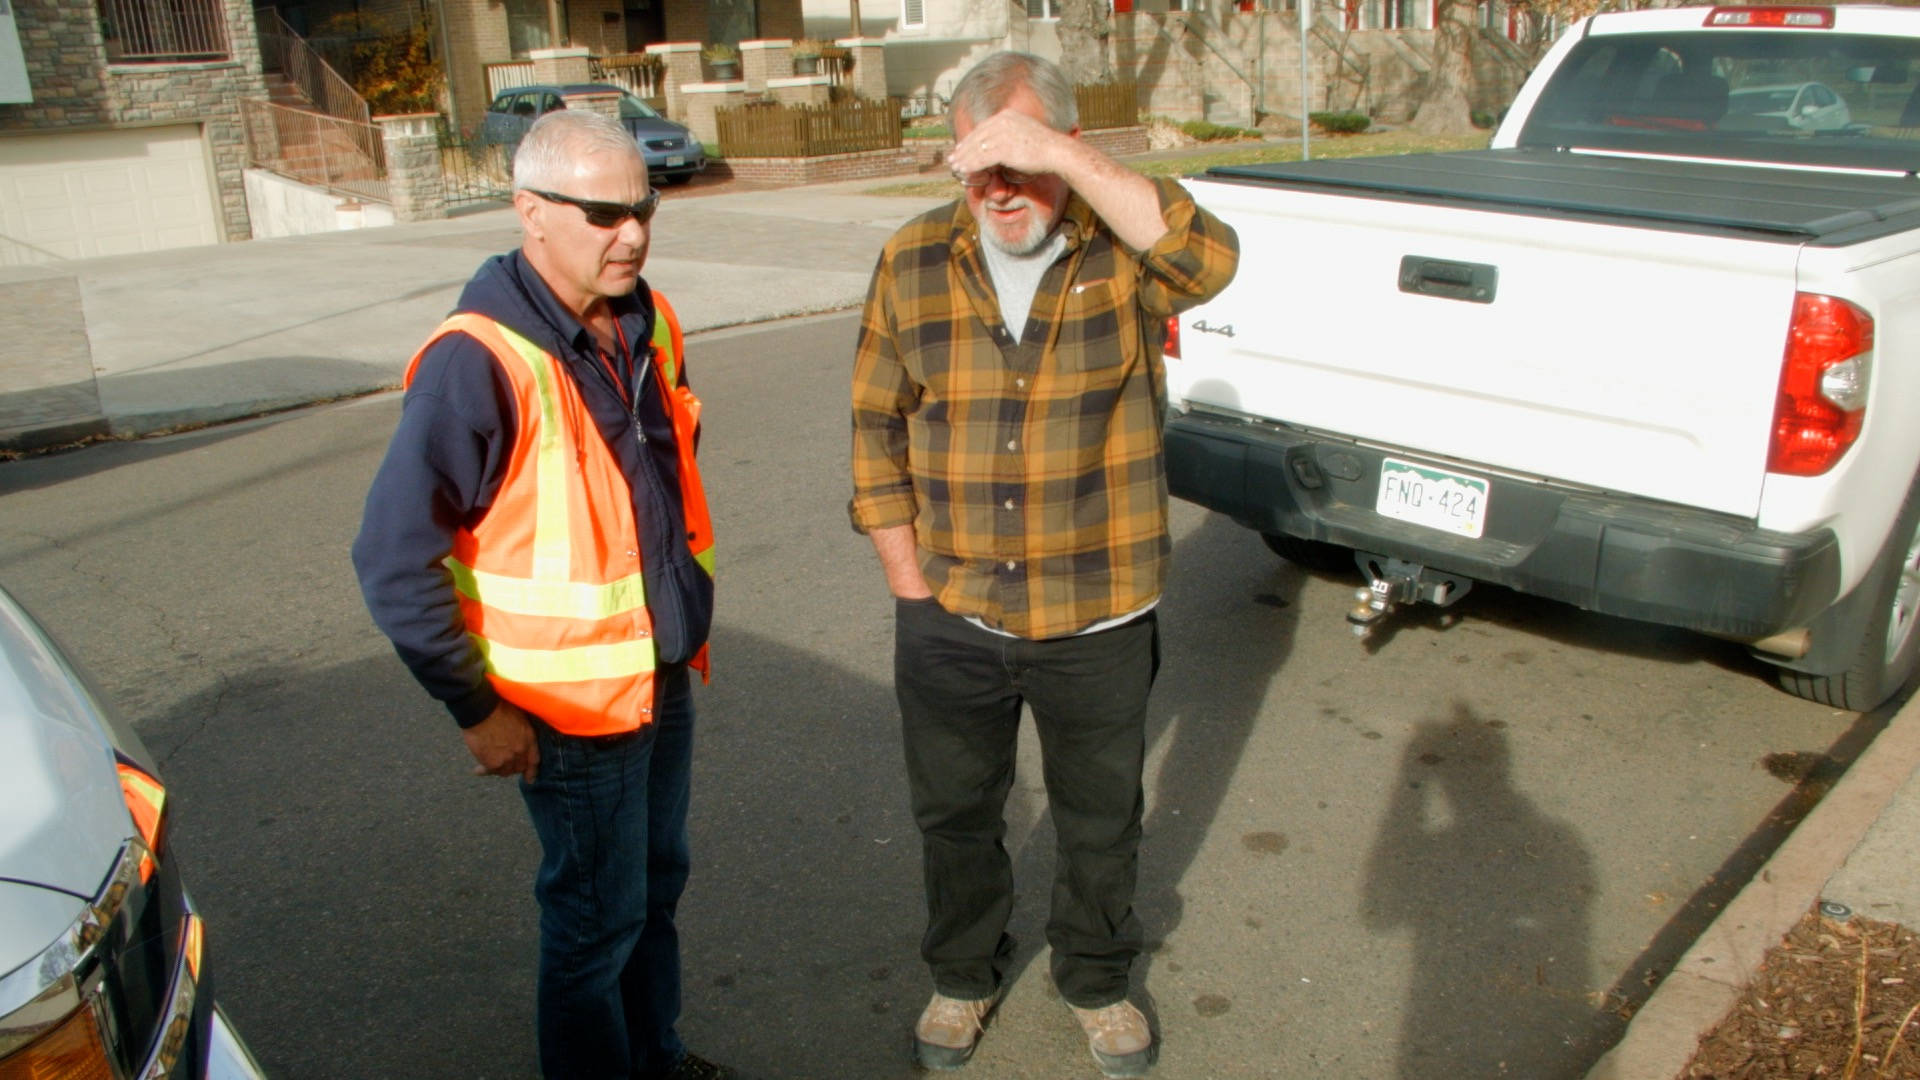 Jim Rael, senior customer service field technician, meets with a Denver Water customer to check for leaks inside the home.